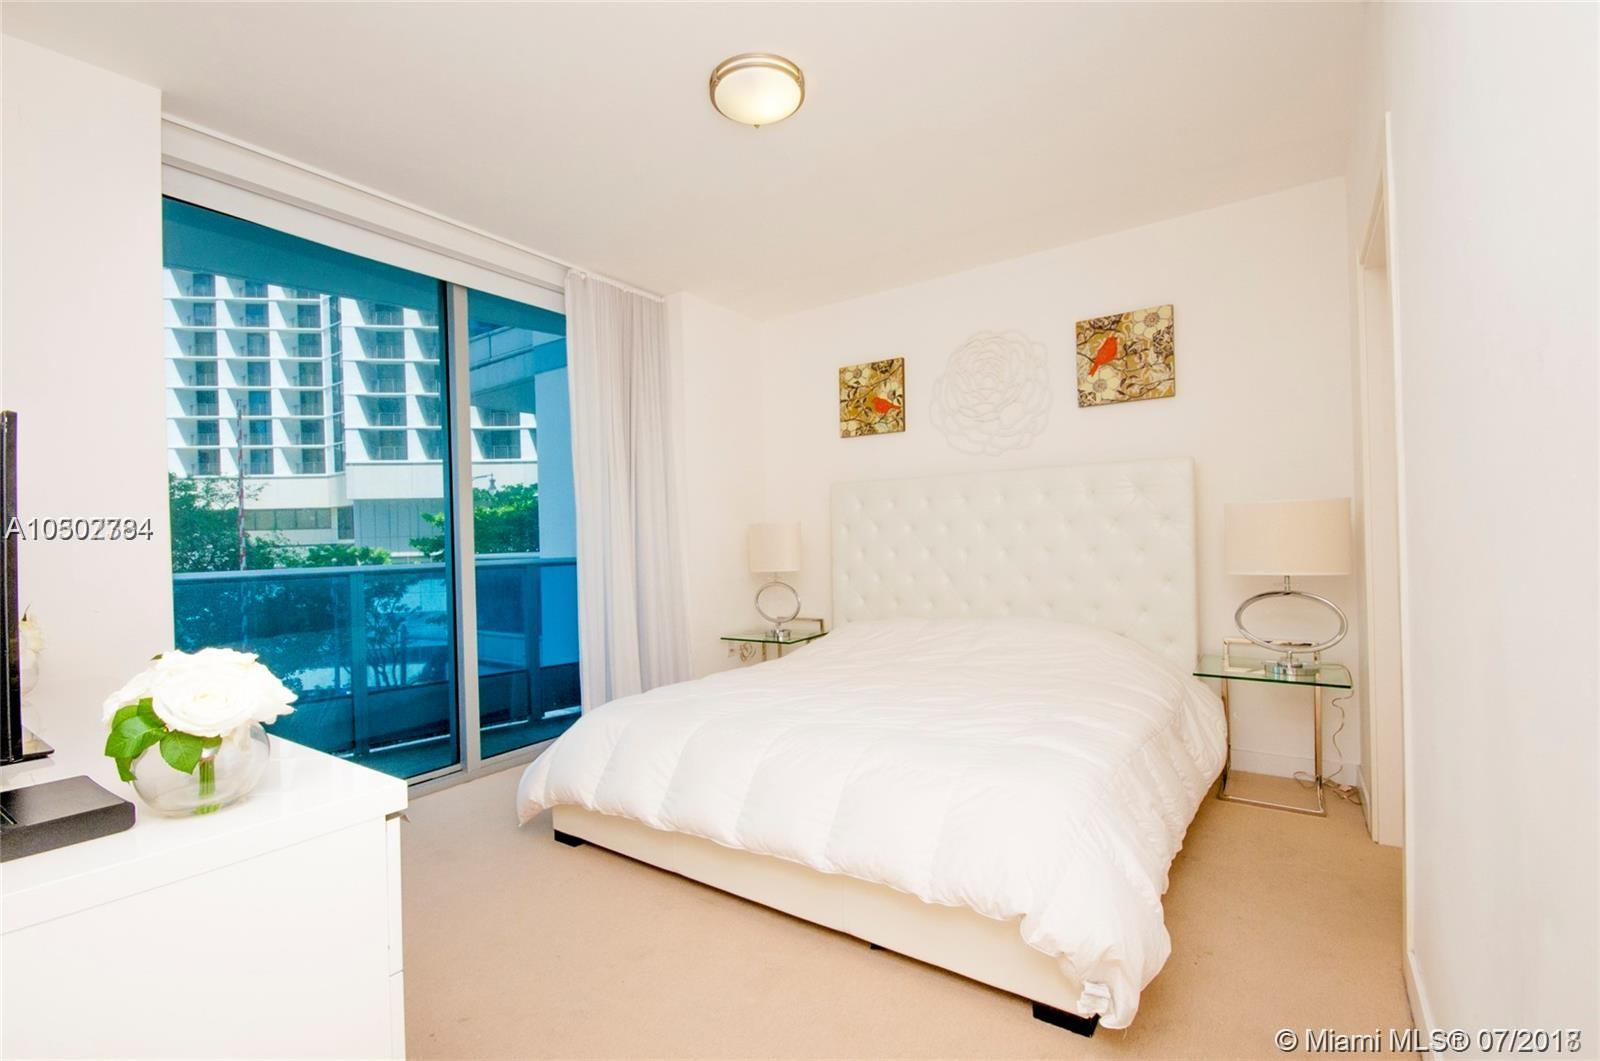 200 Biscayne Boulevard Way #302, Miami | MLS# A10502784 | Closed Sale